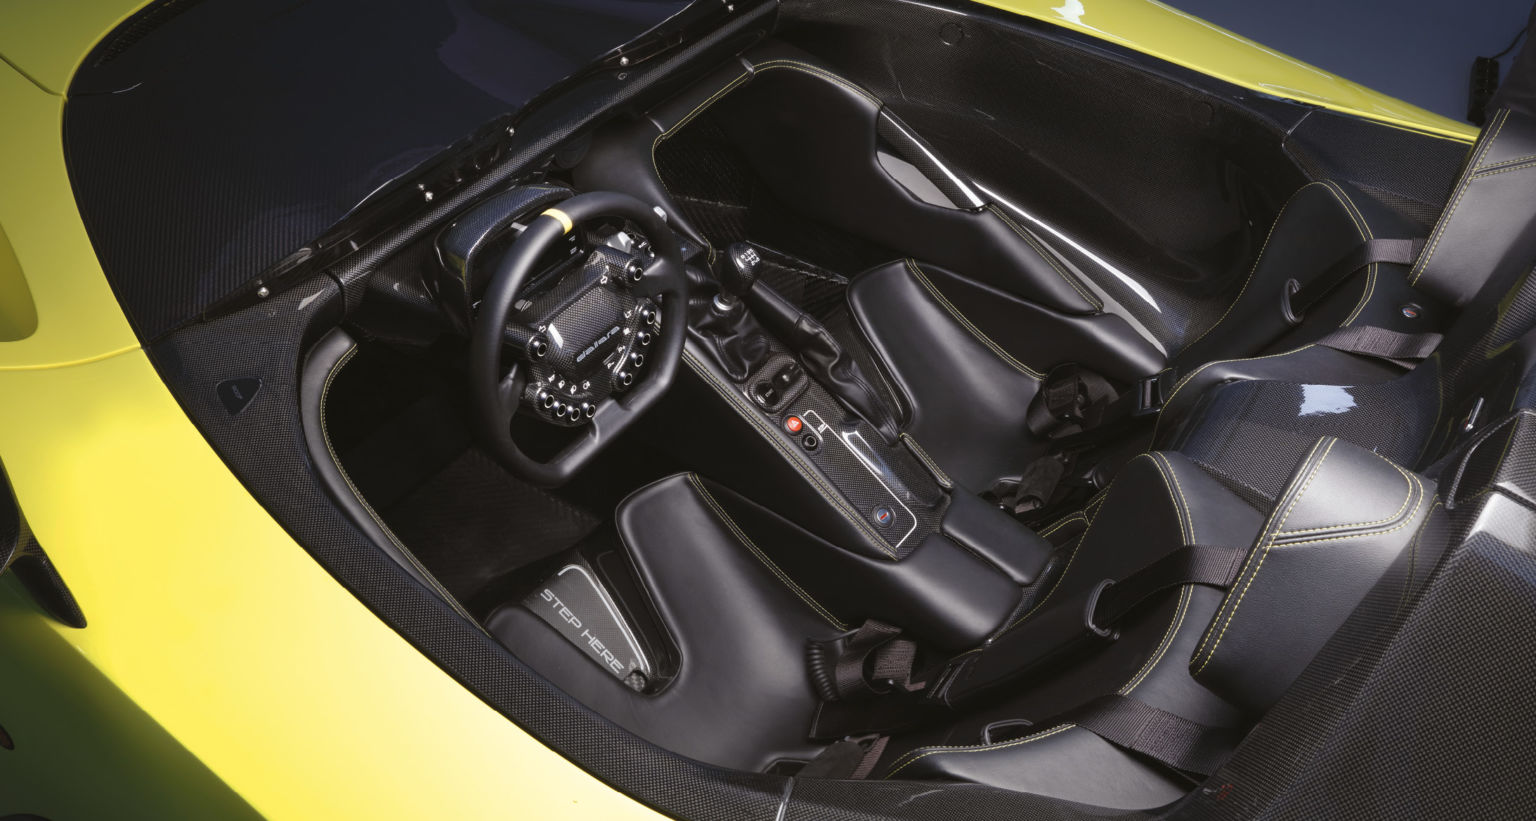 The interior is minimalist, and reflects the car's purpose well. This is a track-focused machine above all